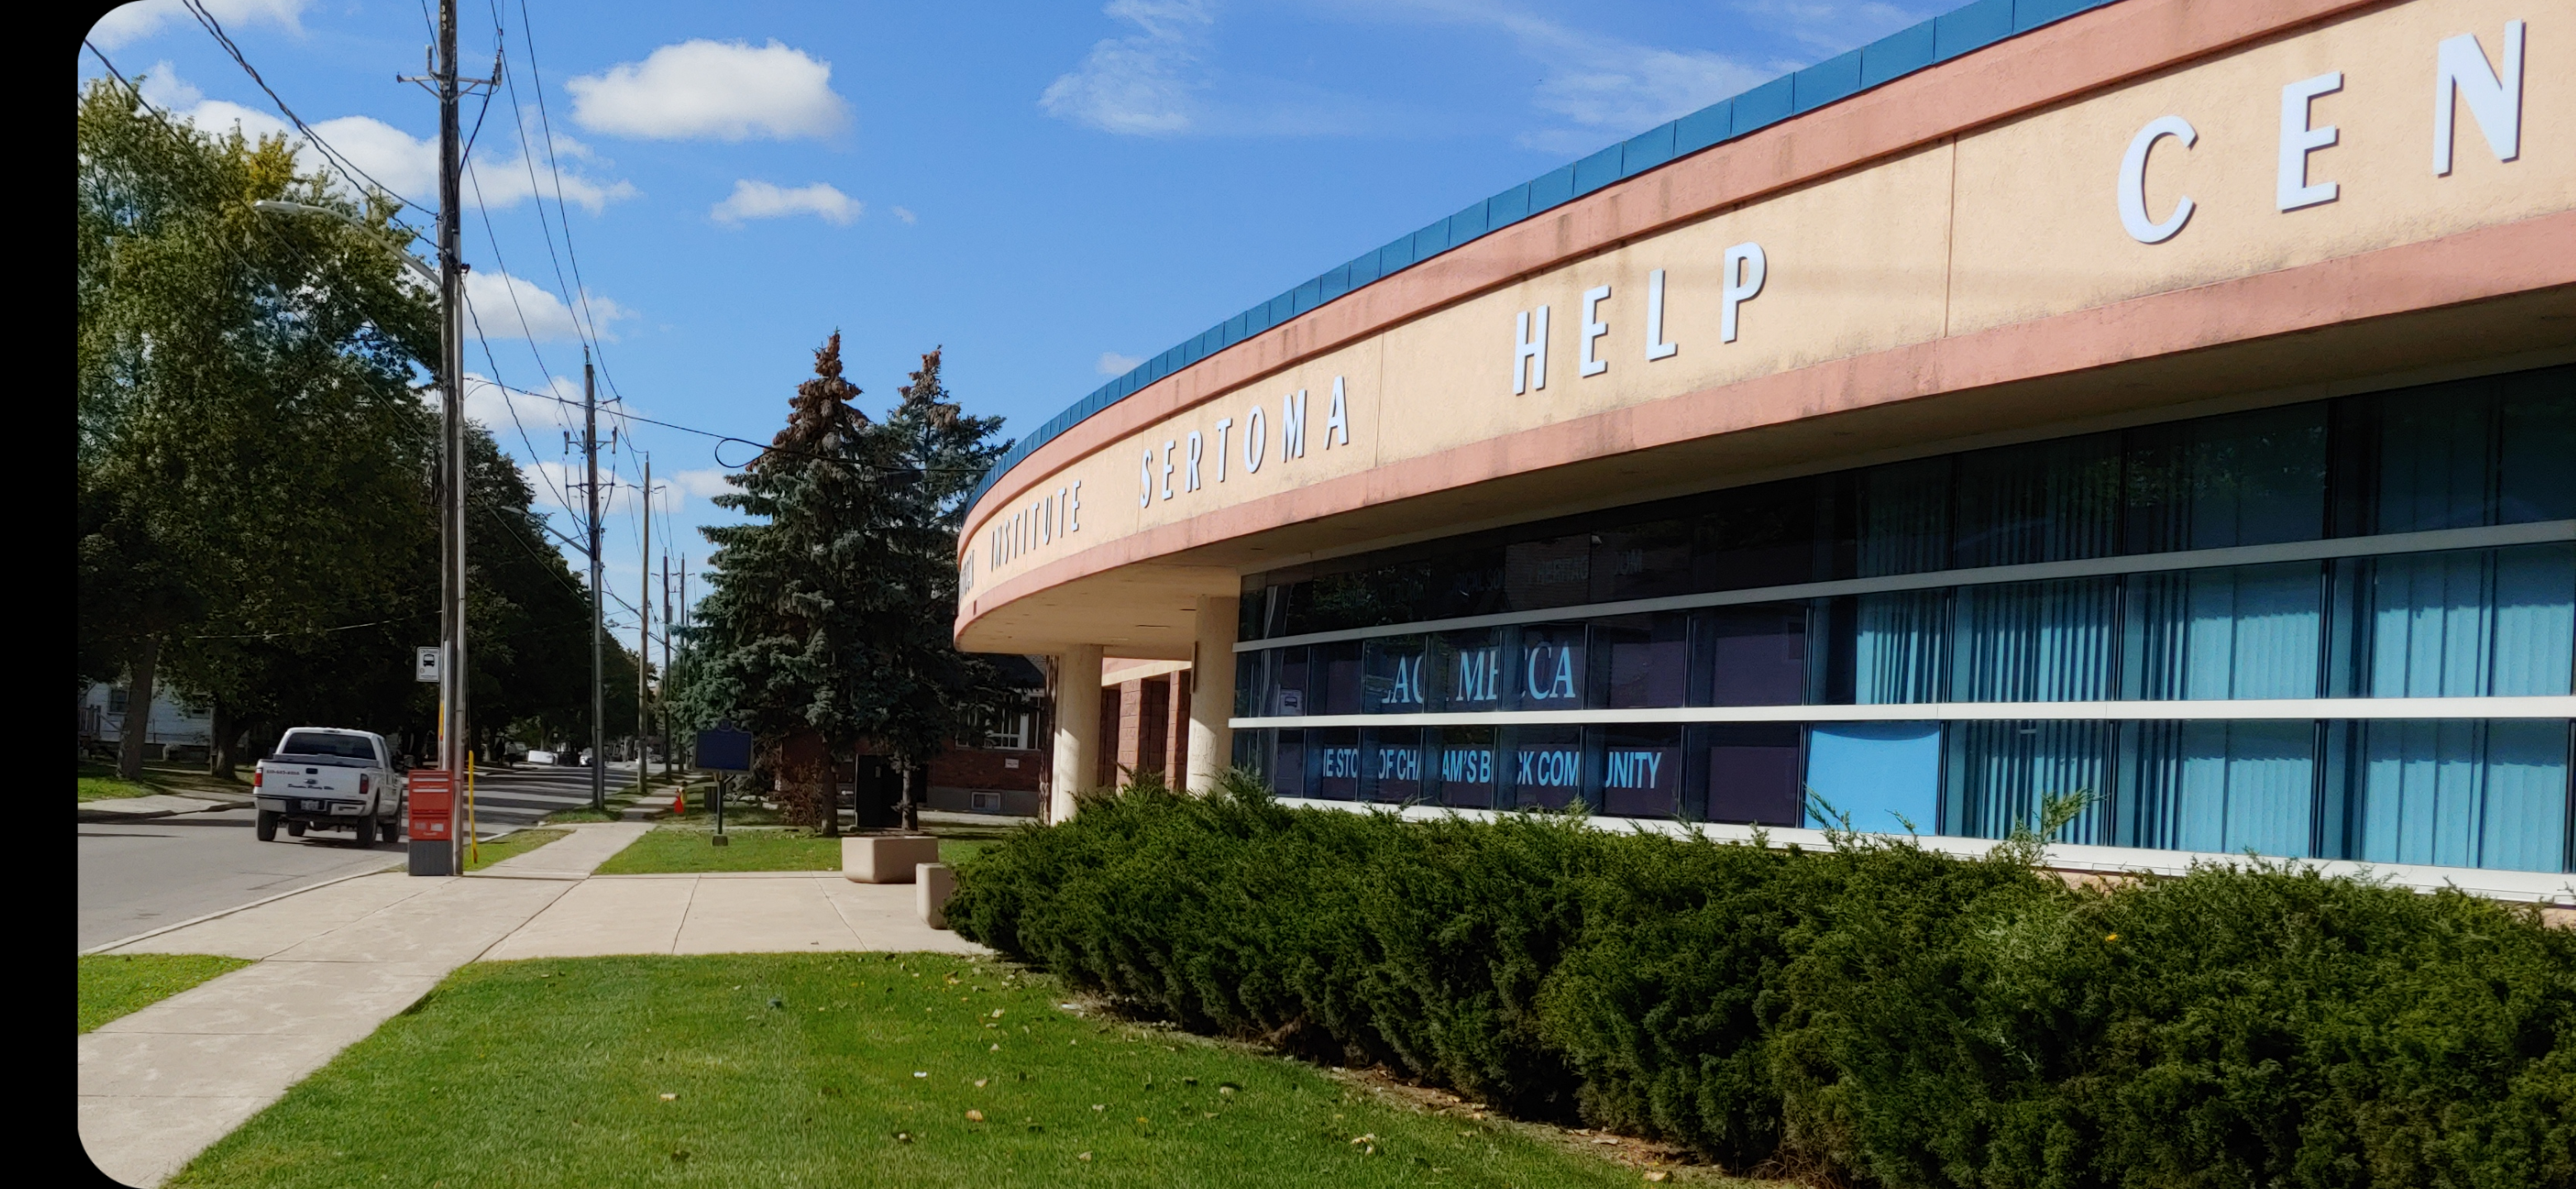 The image is of the WISH Centre, a multipurpose community space, which is also the central location for The Chatham-Kent Black Historical Society. It is in this building where the museum's collection is displayed. The WISH Centre also marks the official landmark location-point for this project on the CKBHS.